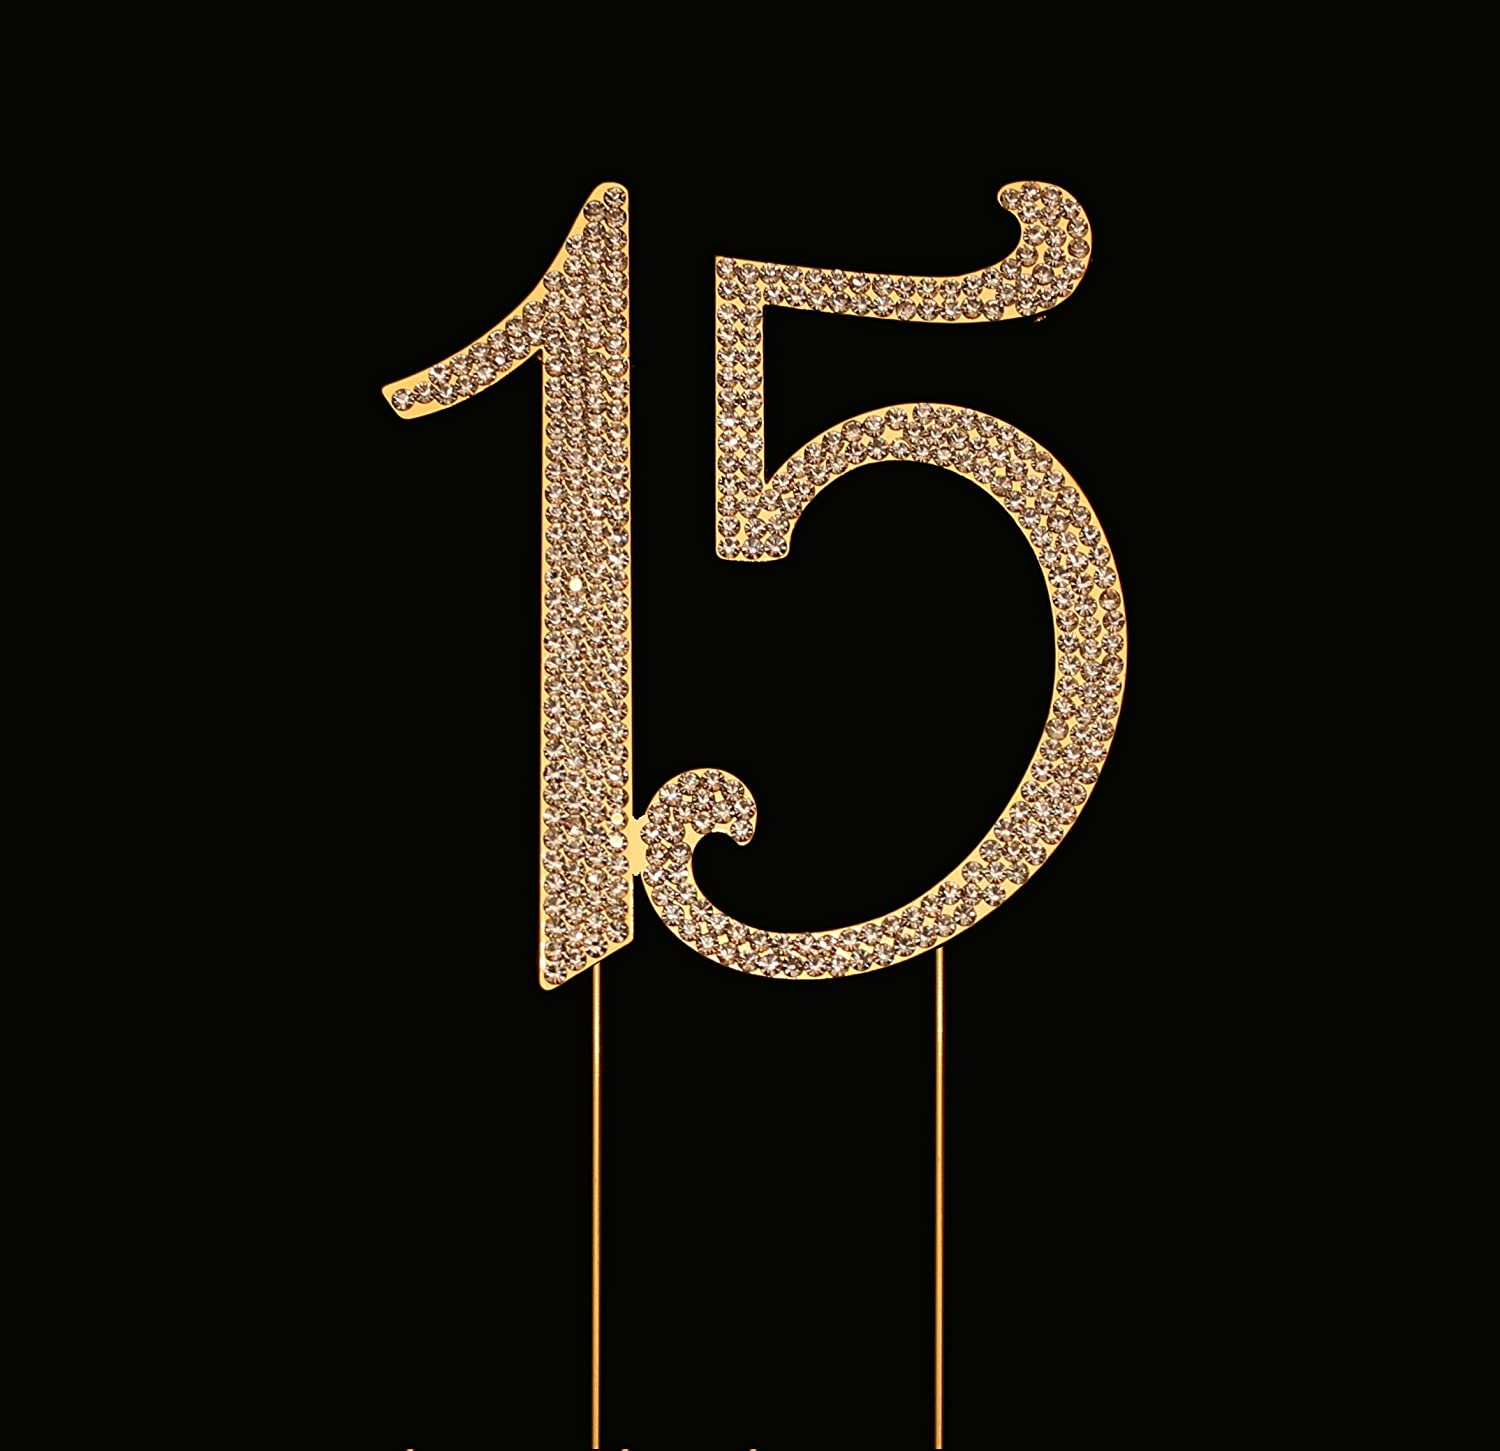 Number 15 for 15th Birthday Cake Topper, 15th Anniversary Cake Topper, 15th Birthday Party Decorations, Joint Gold, 4.5 Inches Tall COMIN18JU083896